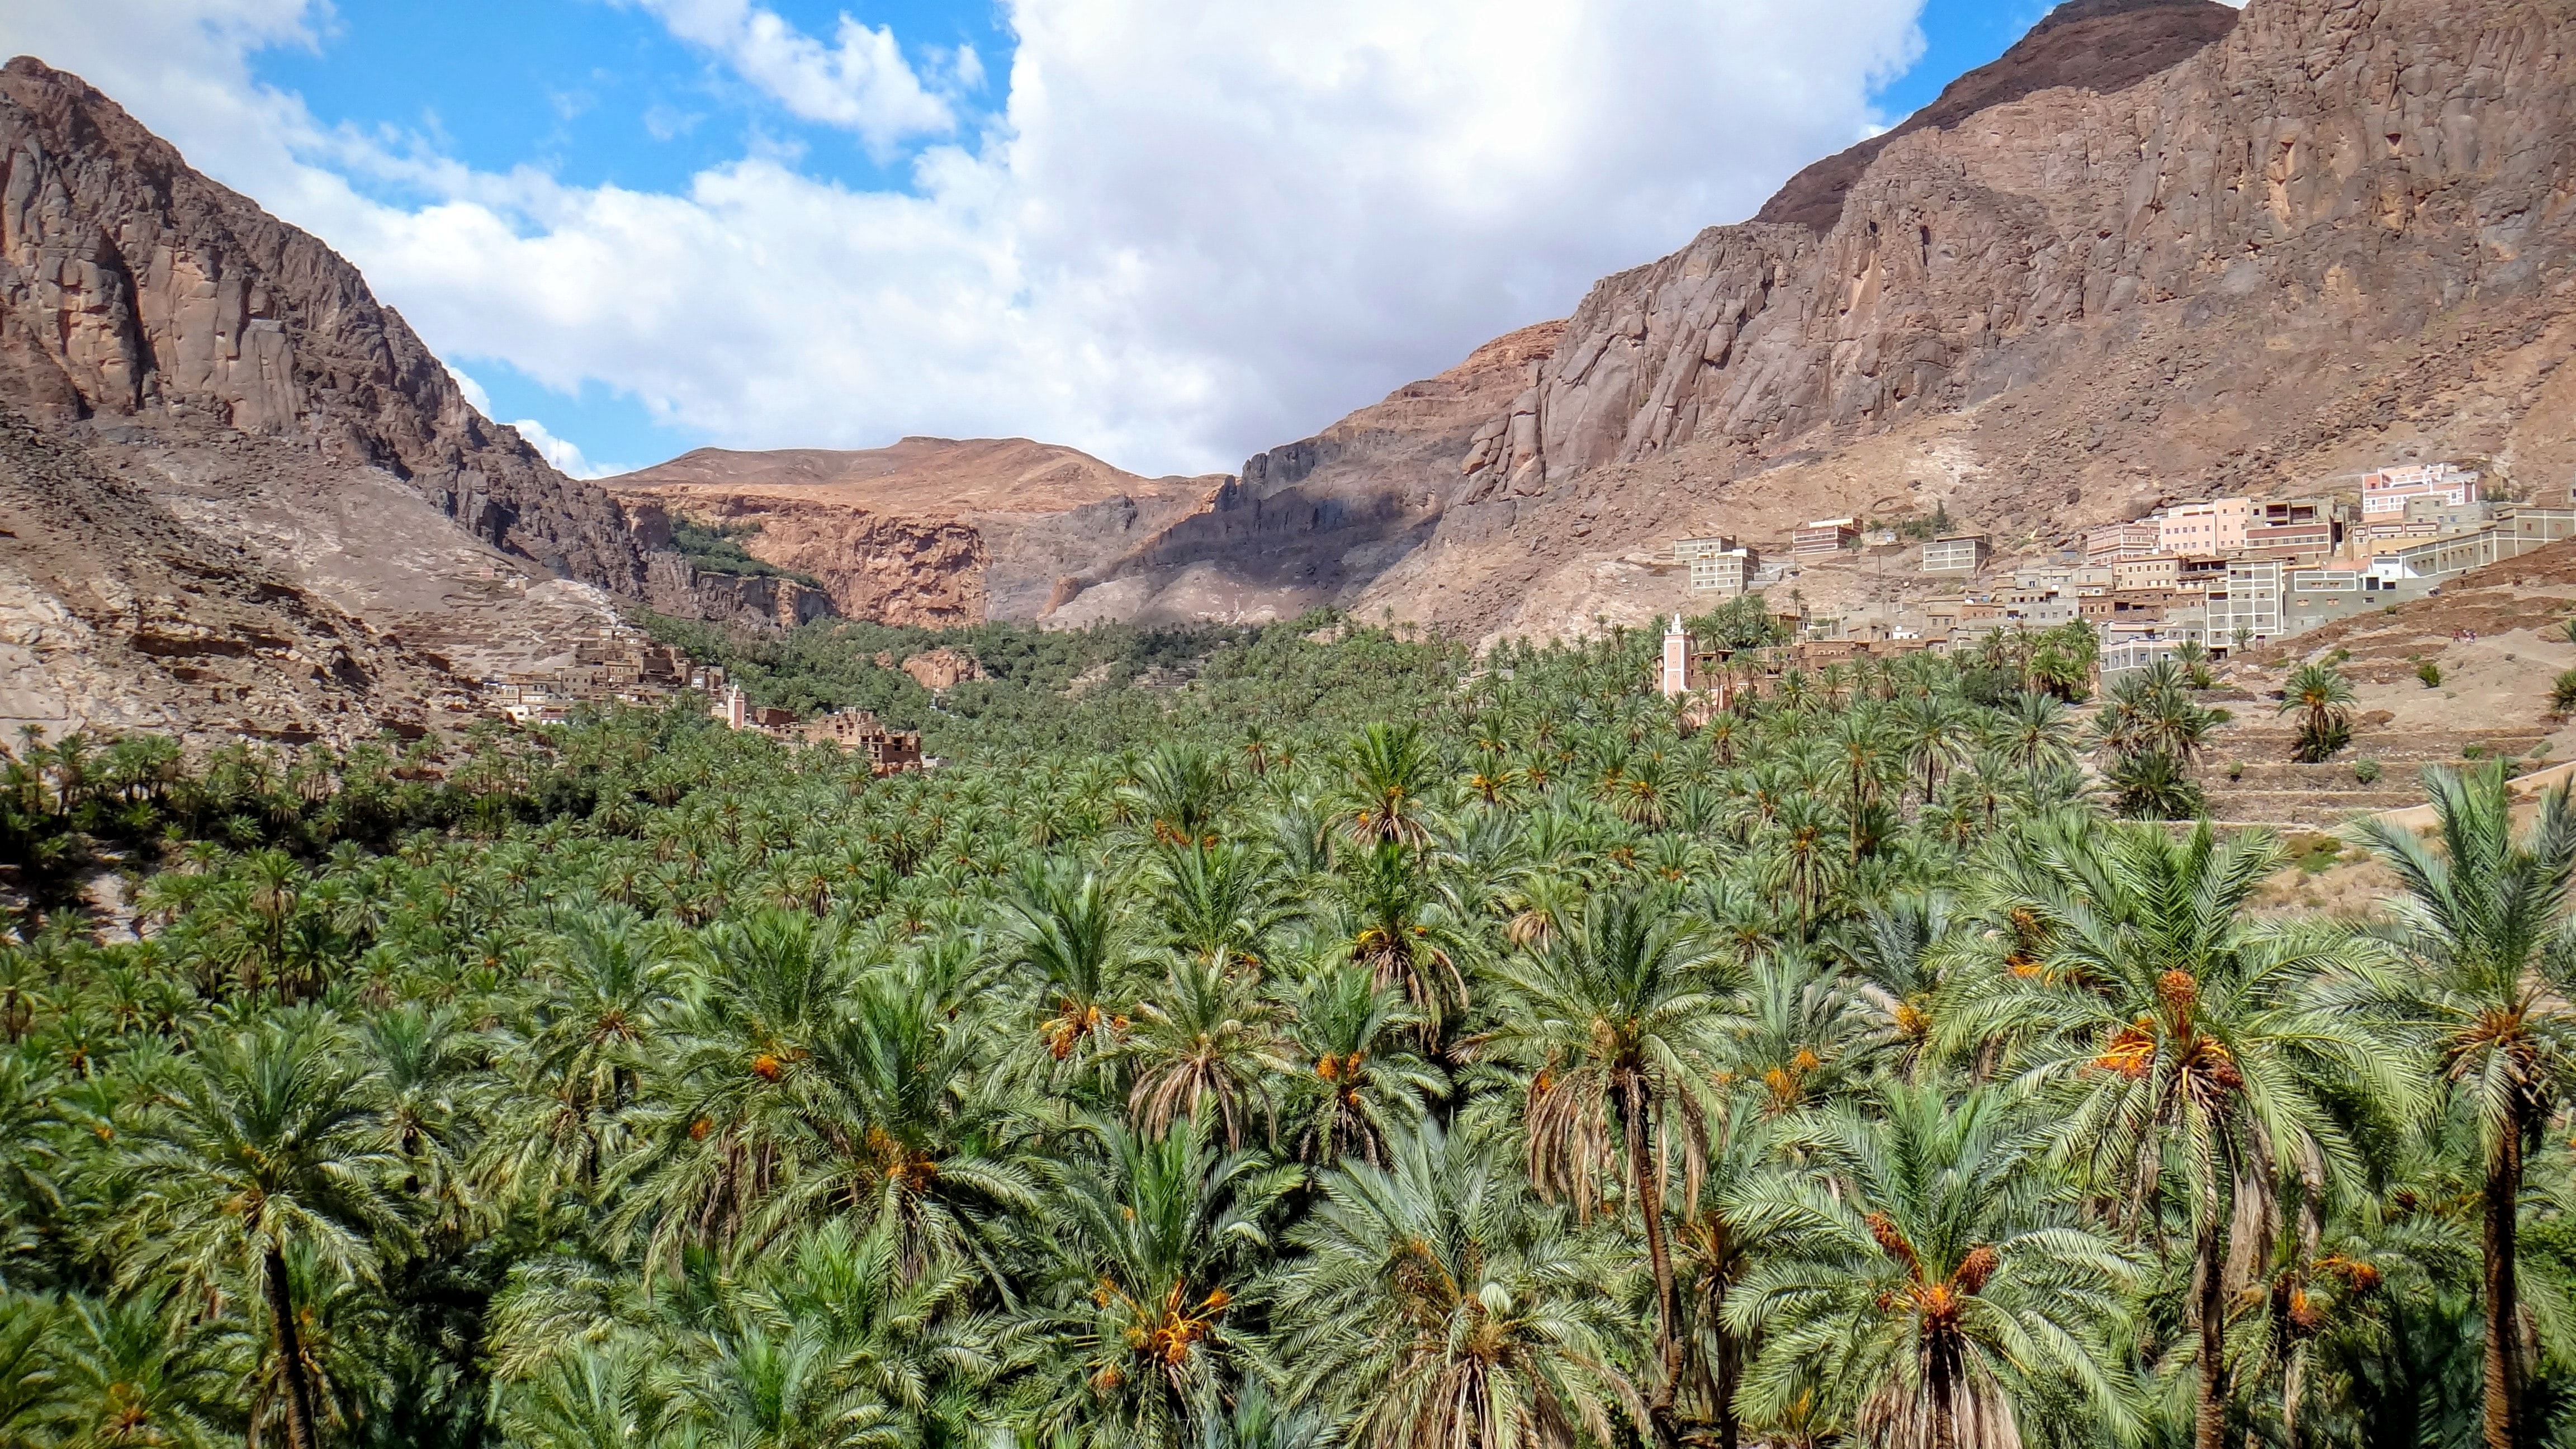 green palm trees between mountain slopes